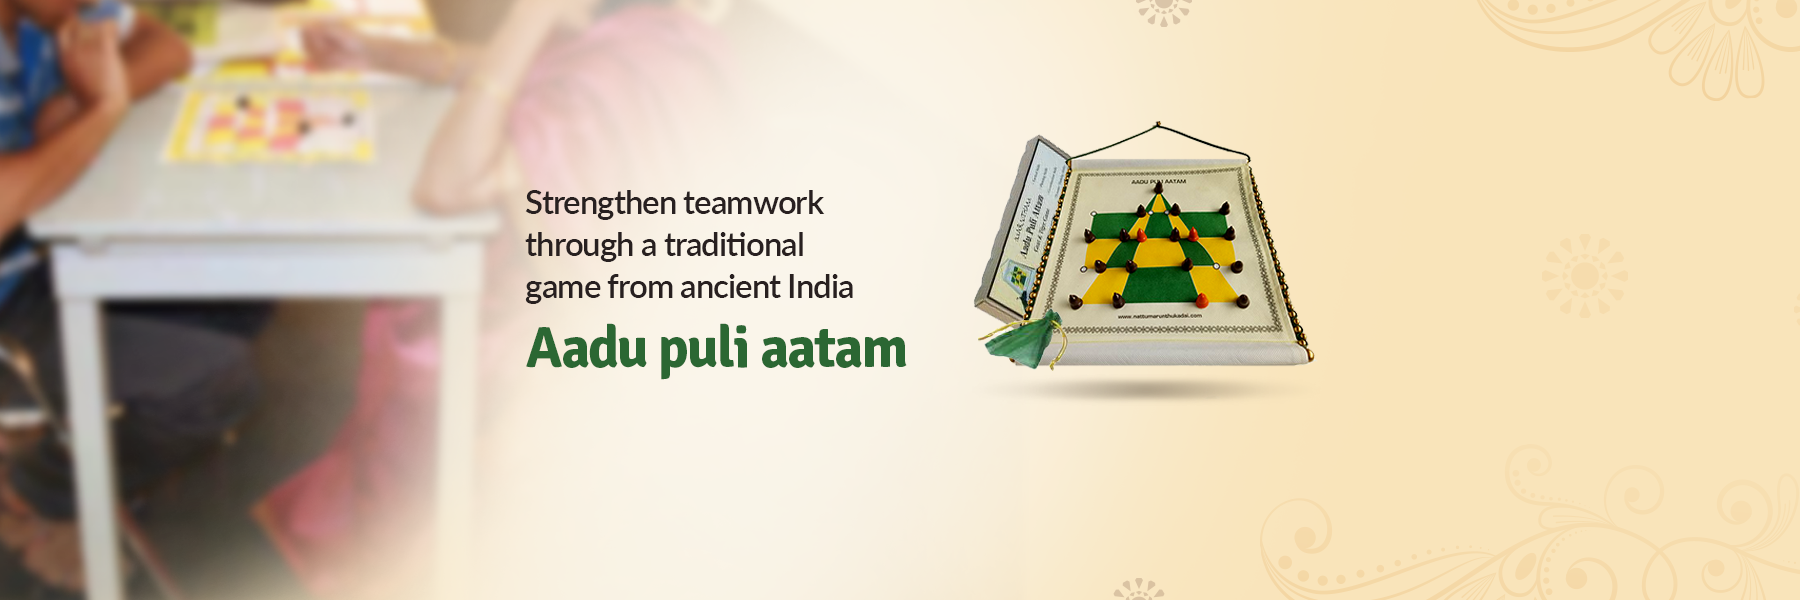 Strengthen Teamwork Through A Traditional Game from Ancient India